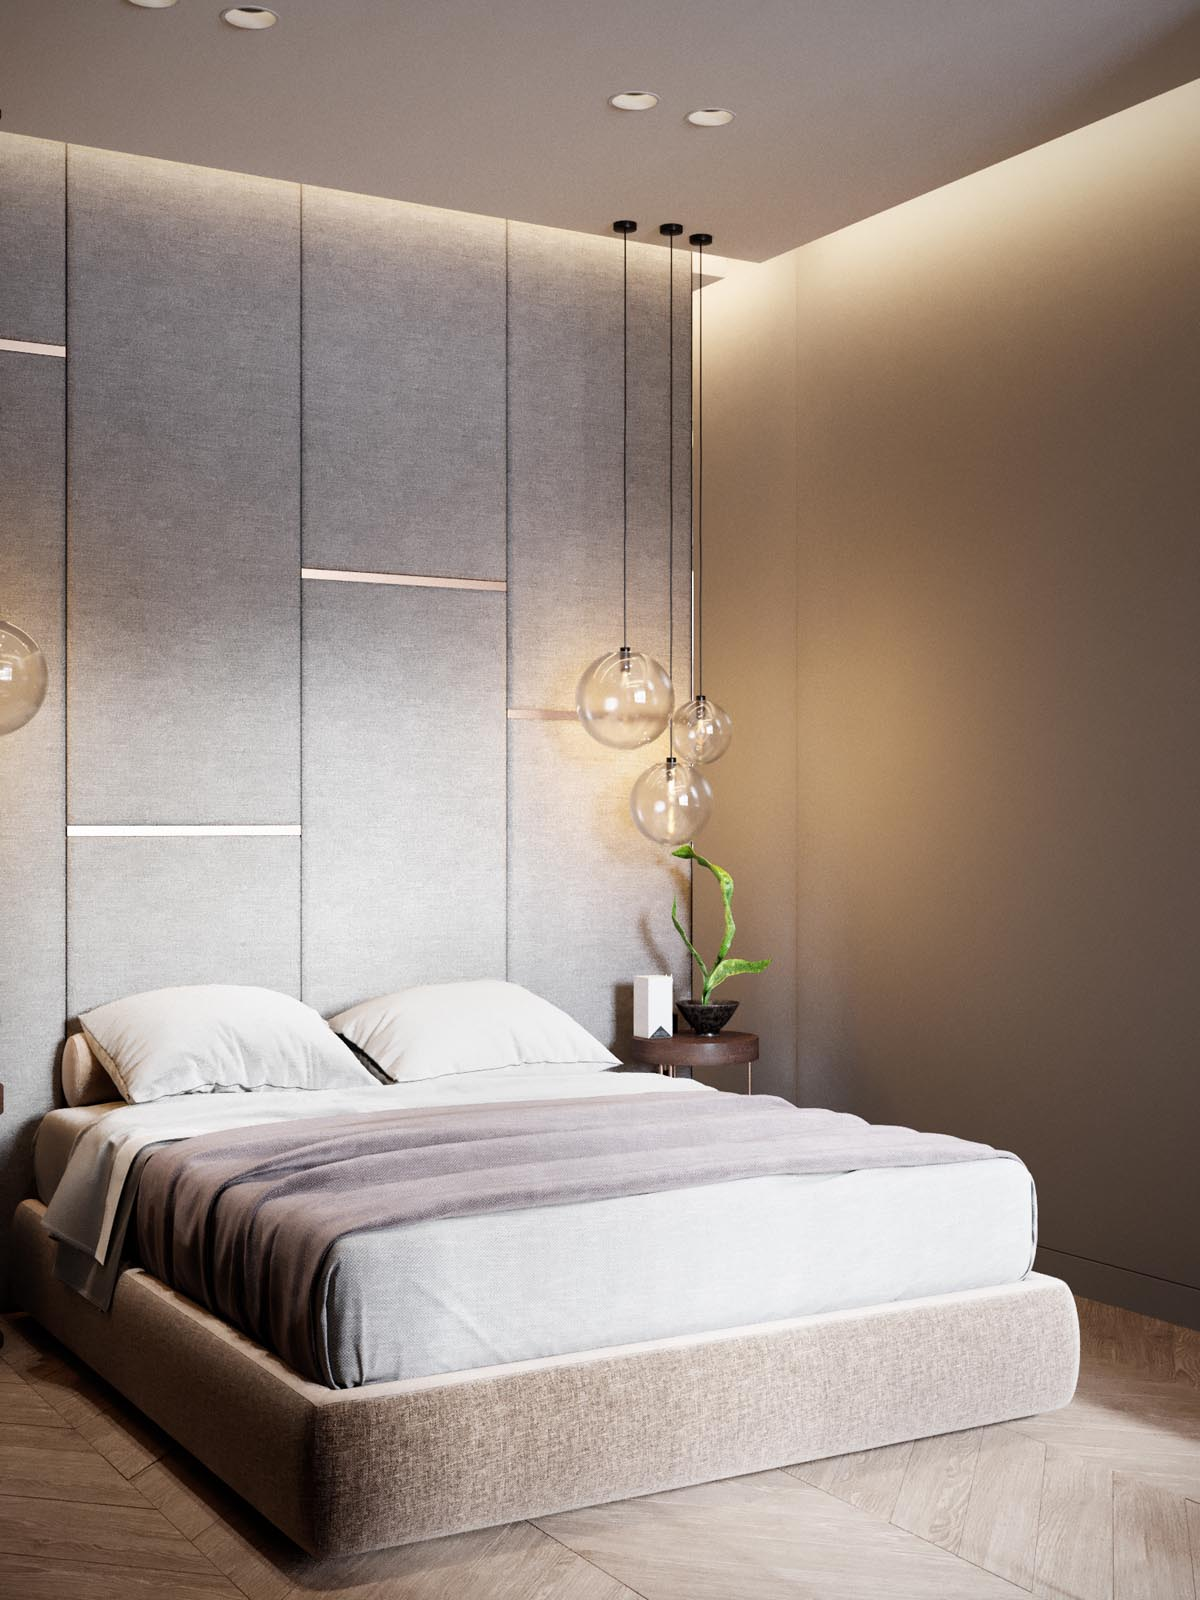 Home design under 60 square meters 3 examples that for Simplistic bedroom